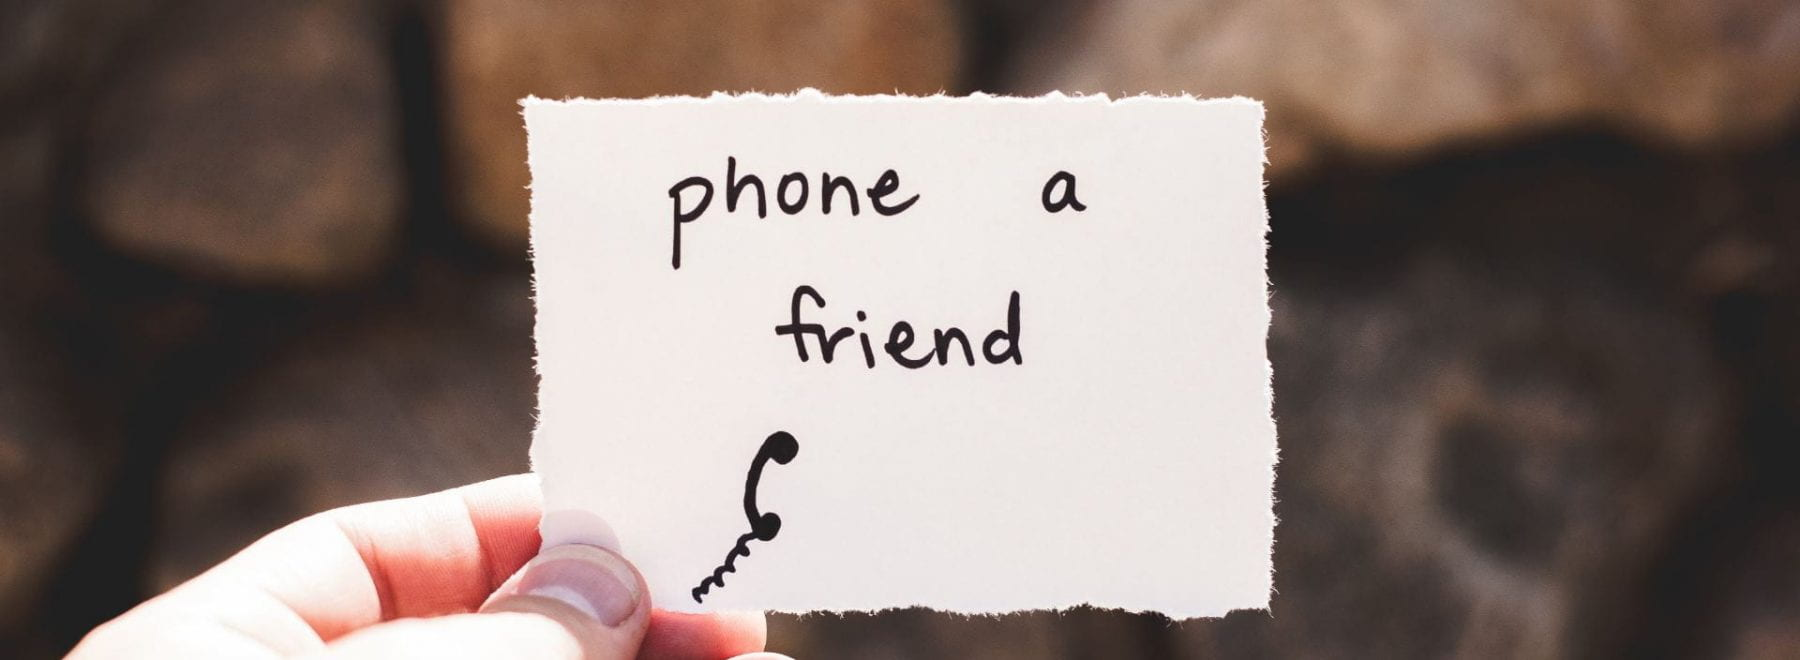 person holding a piece of paper with 'phone a friend' written on it